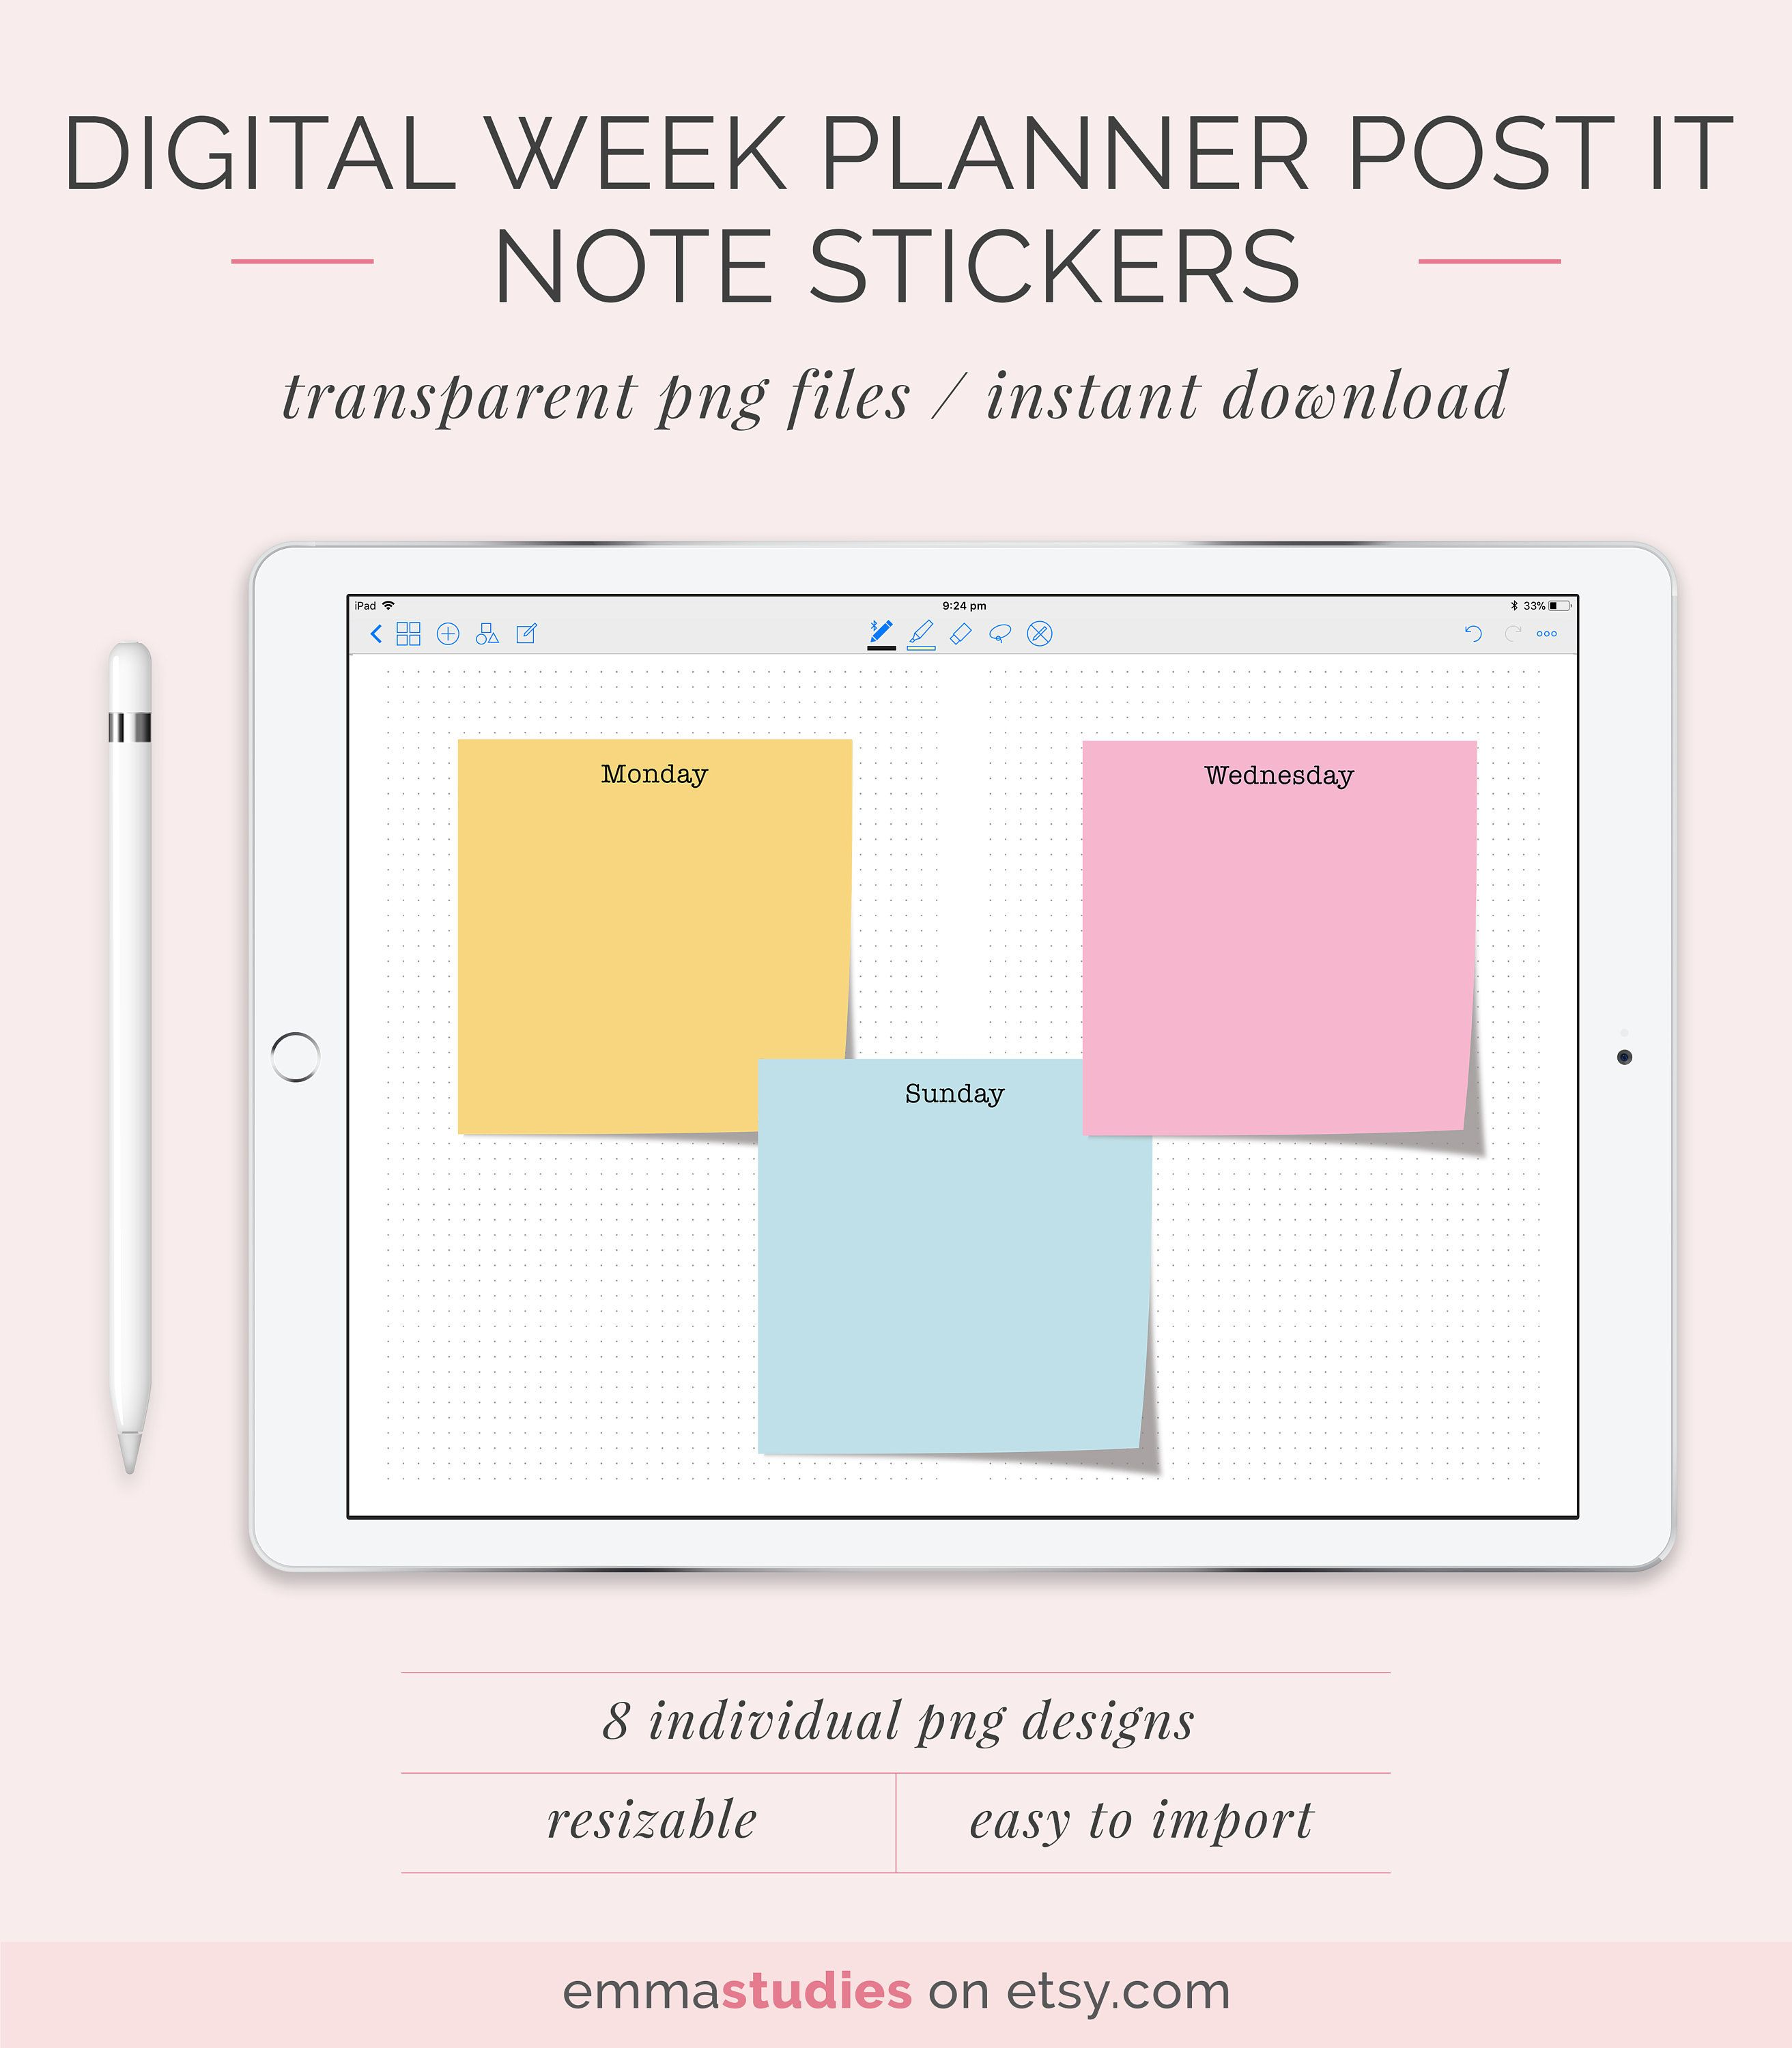 Digital Weekday Note Pastel Sticky Notes Dated Ipad Tablet Goodnotes Notability Week Planner Transparent Instant Download